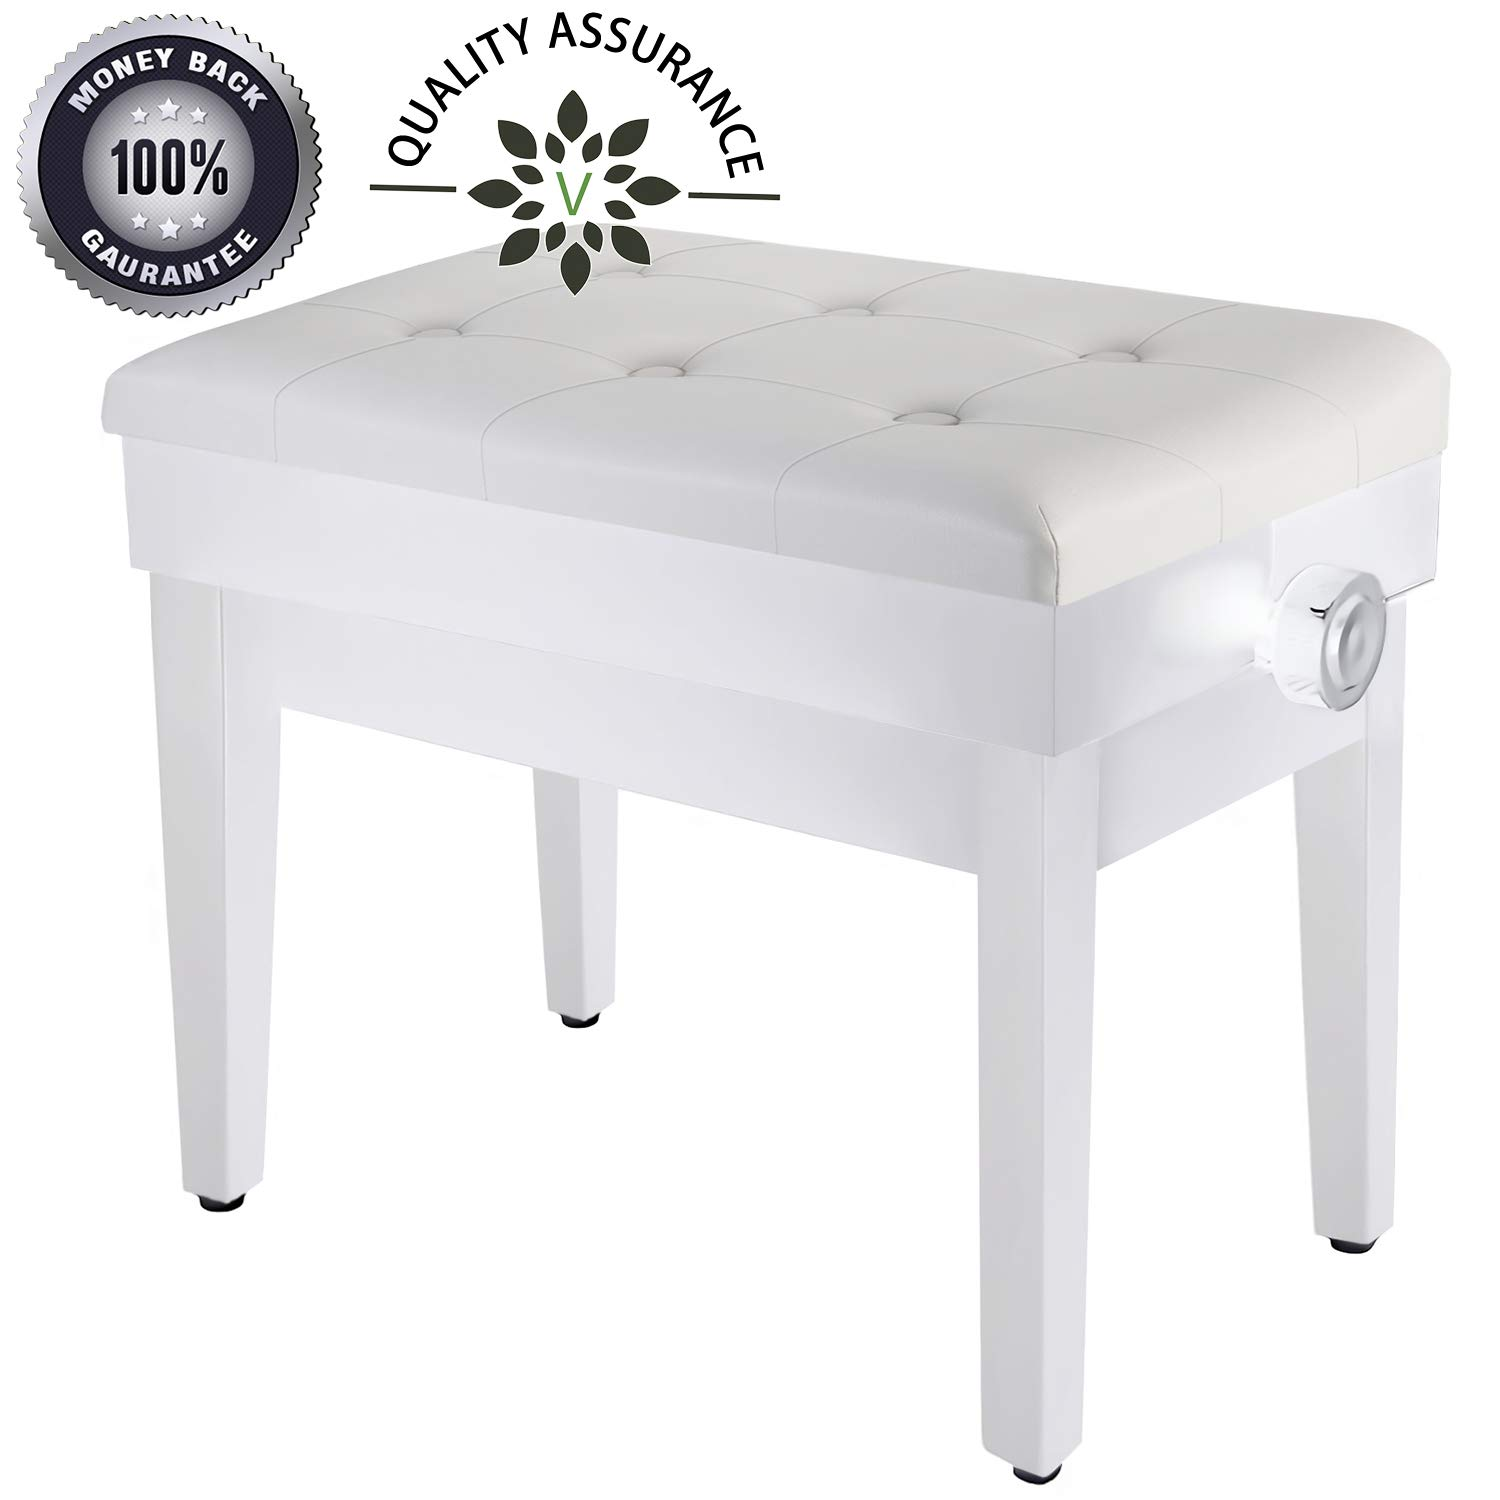 Fabulous Adjustable Piano Bench Wooden Piano Stool With Music Storage Height Adjustable Pu Leather And Solid Wood White Short Links Chair Design For Home Short Linksinfo